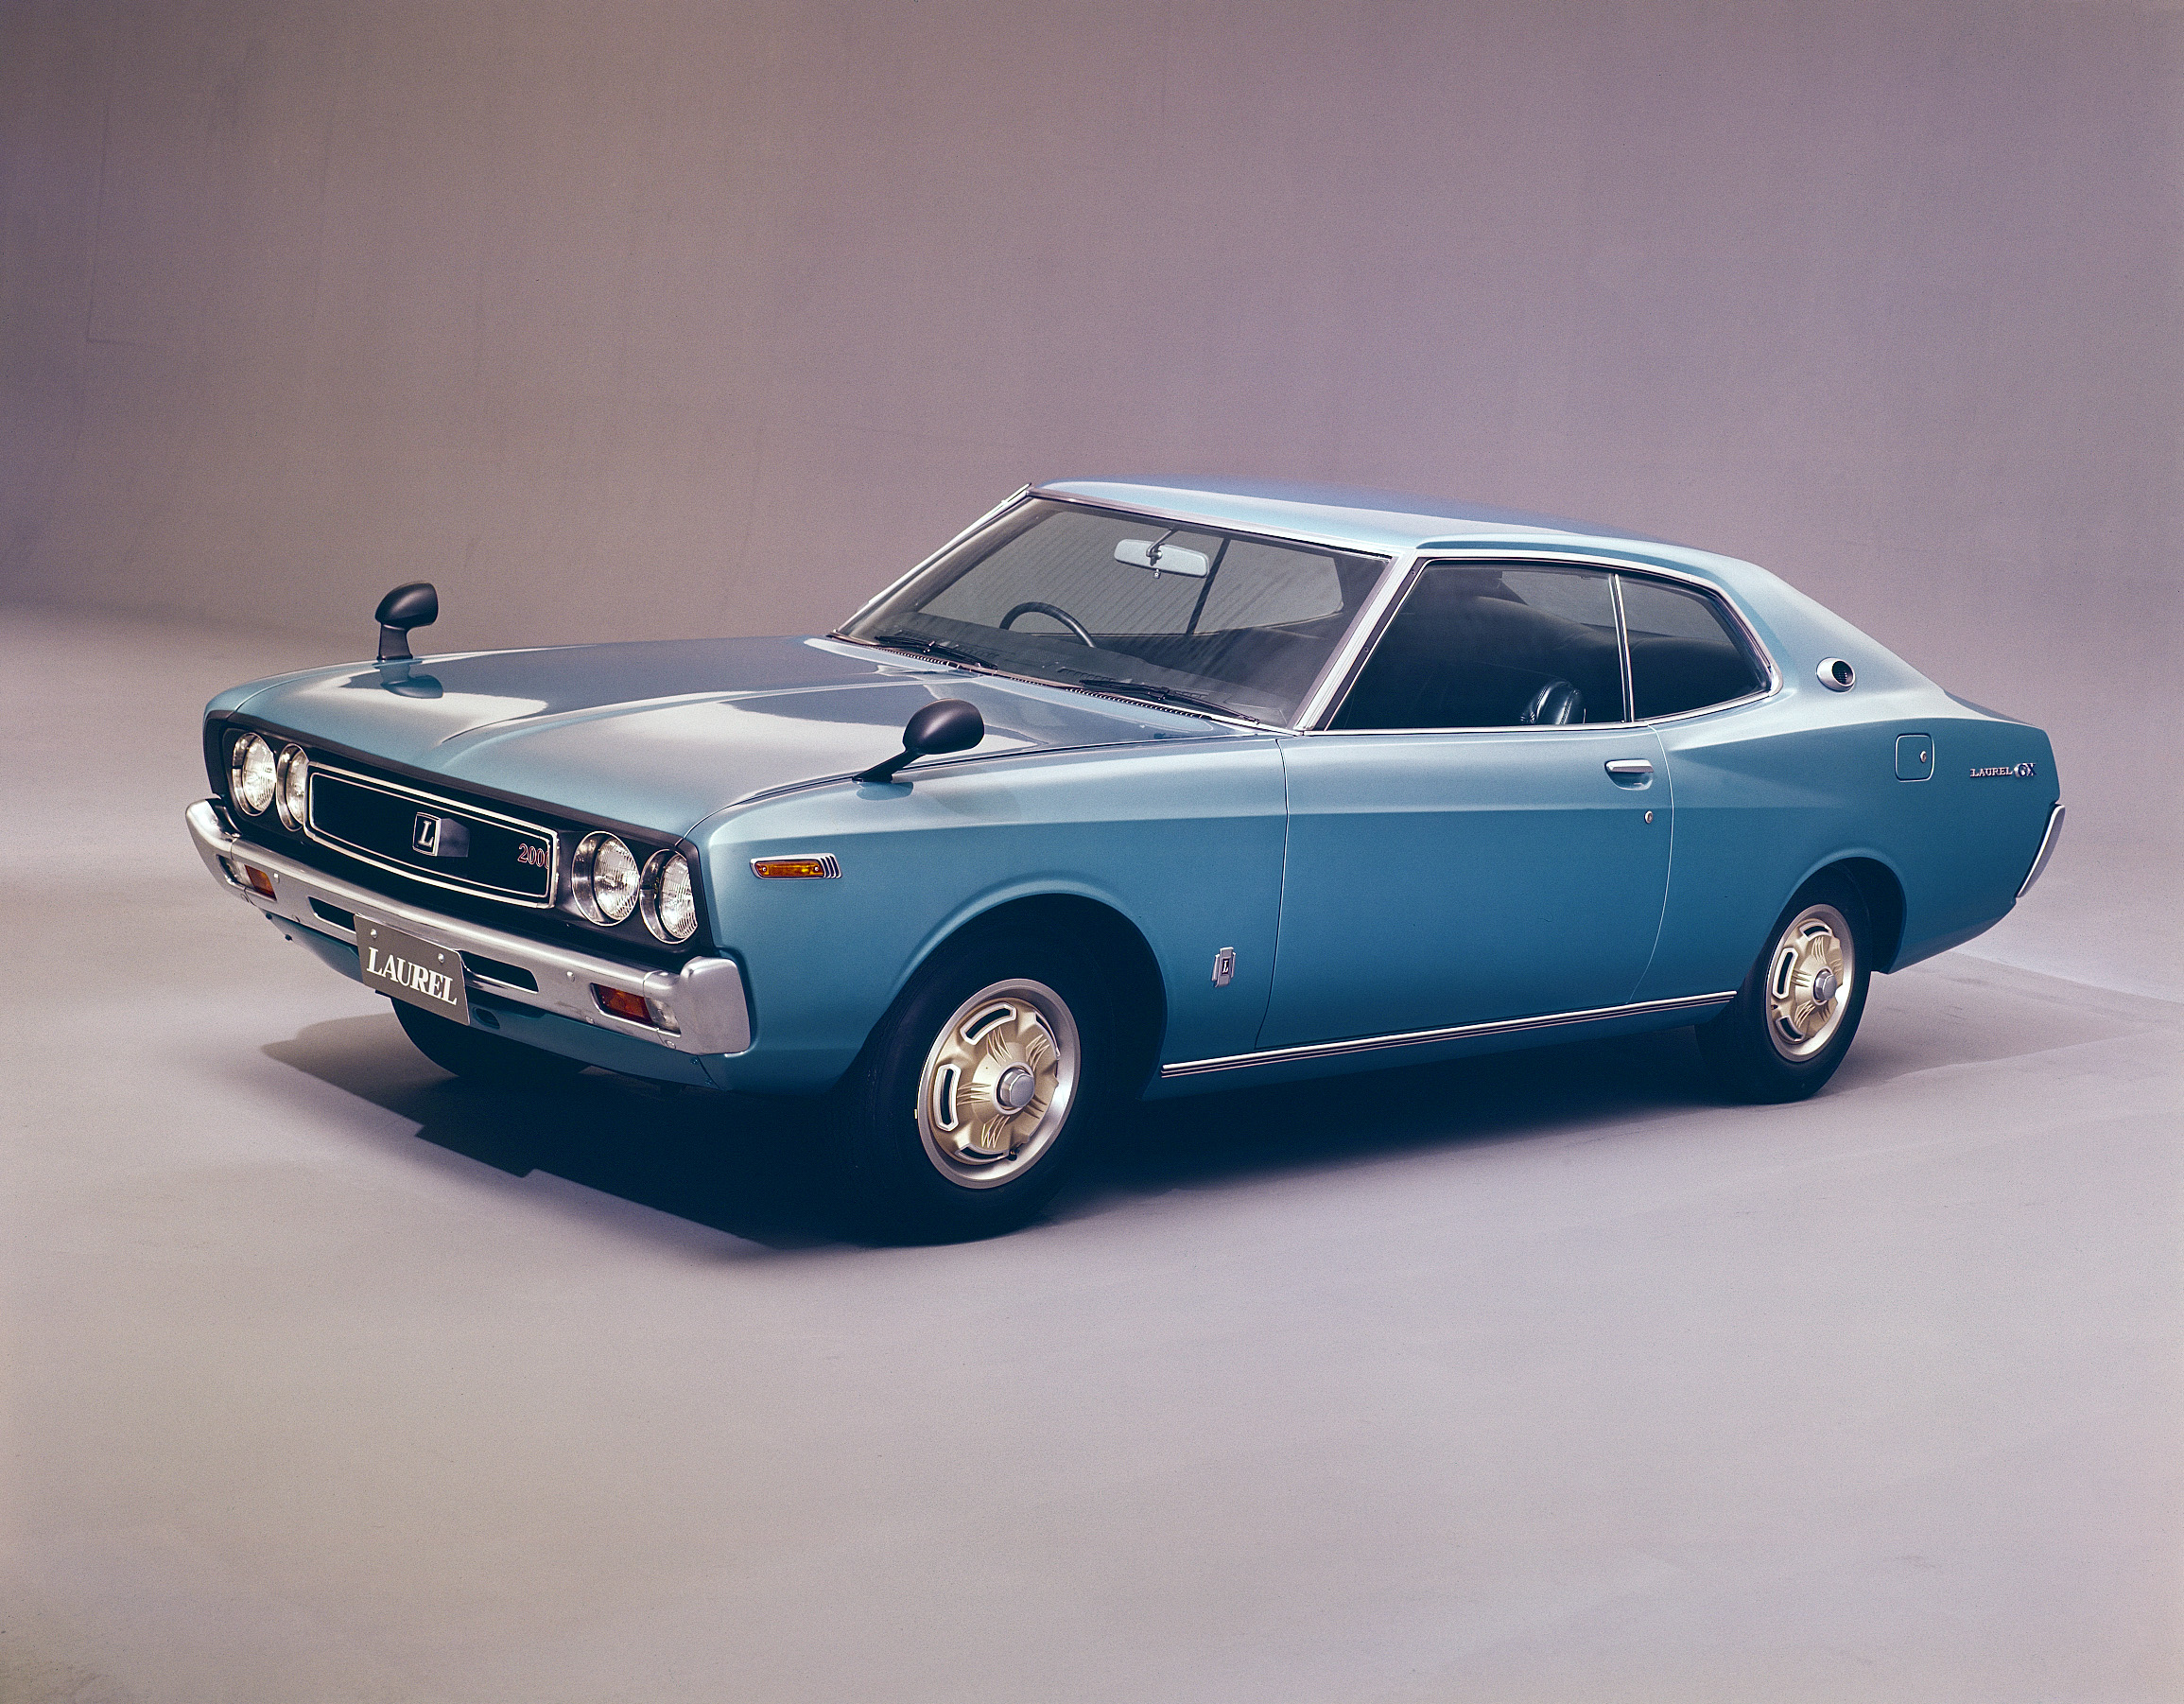 1972 Nissan Laurel #20